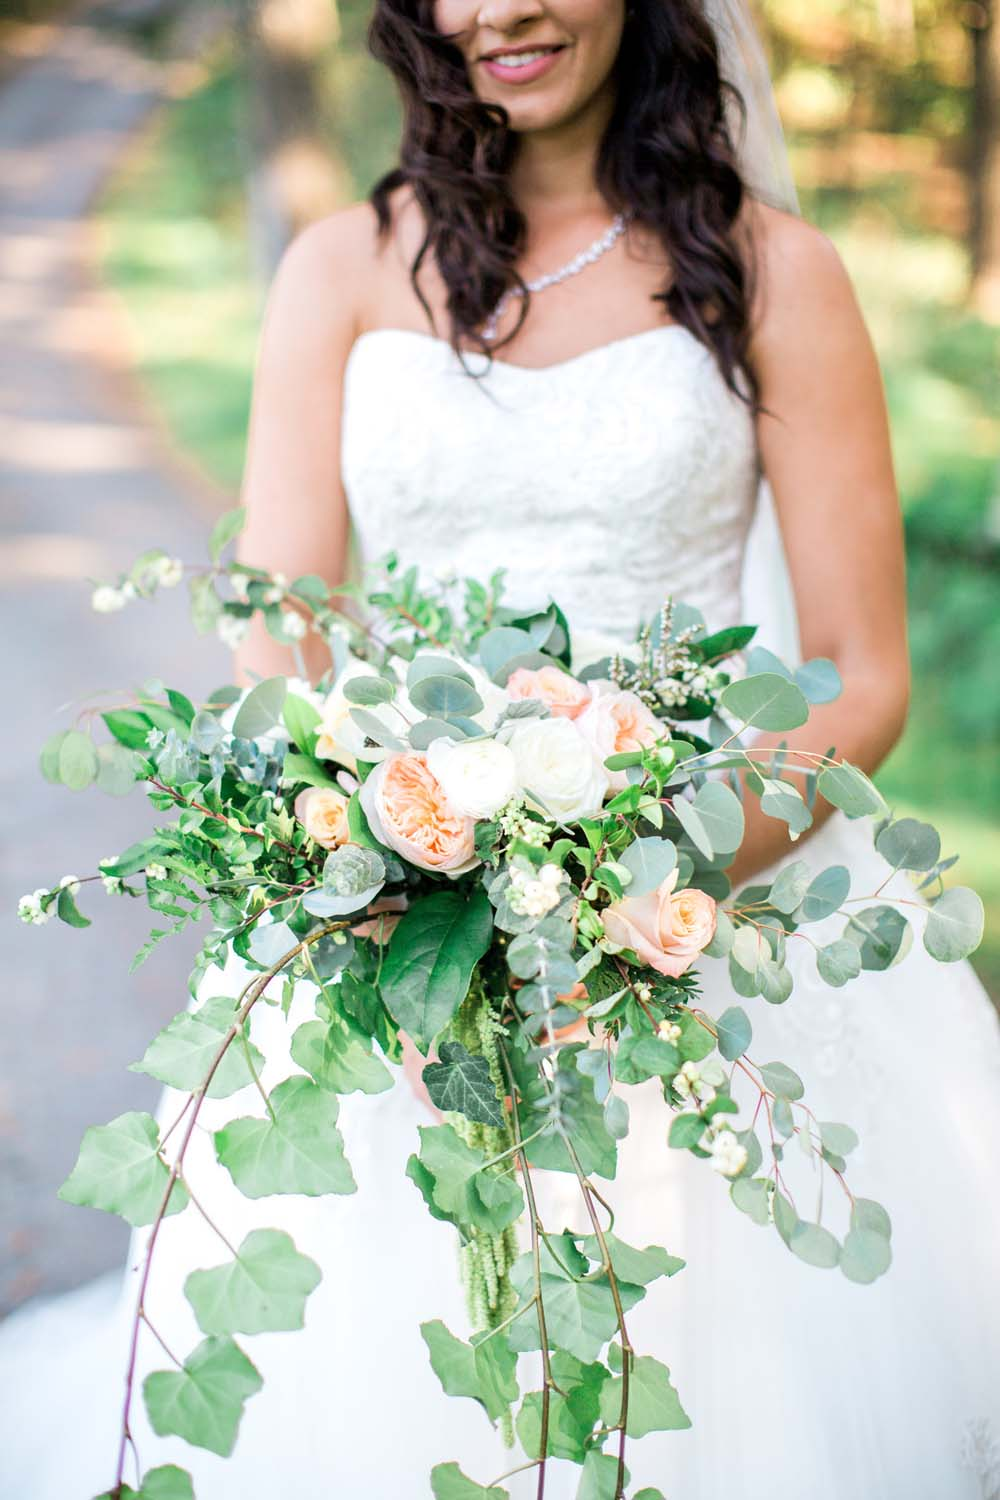 A Rustic, Whimsical Wedding in Tottenham - Bouquet details